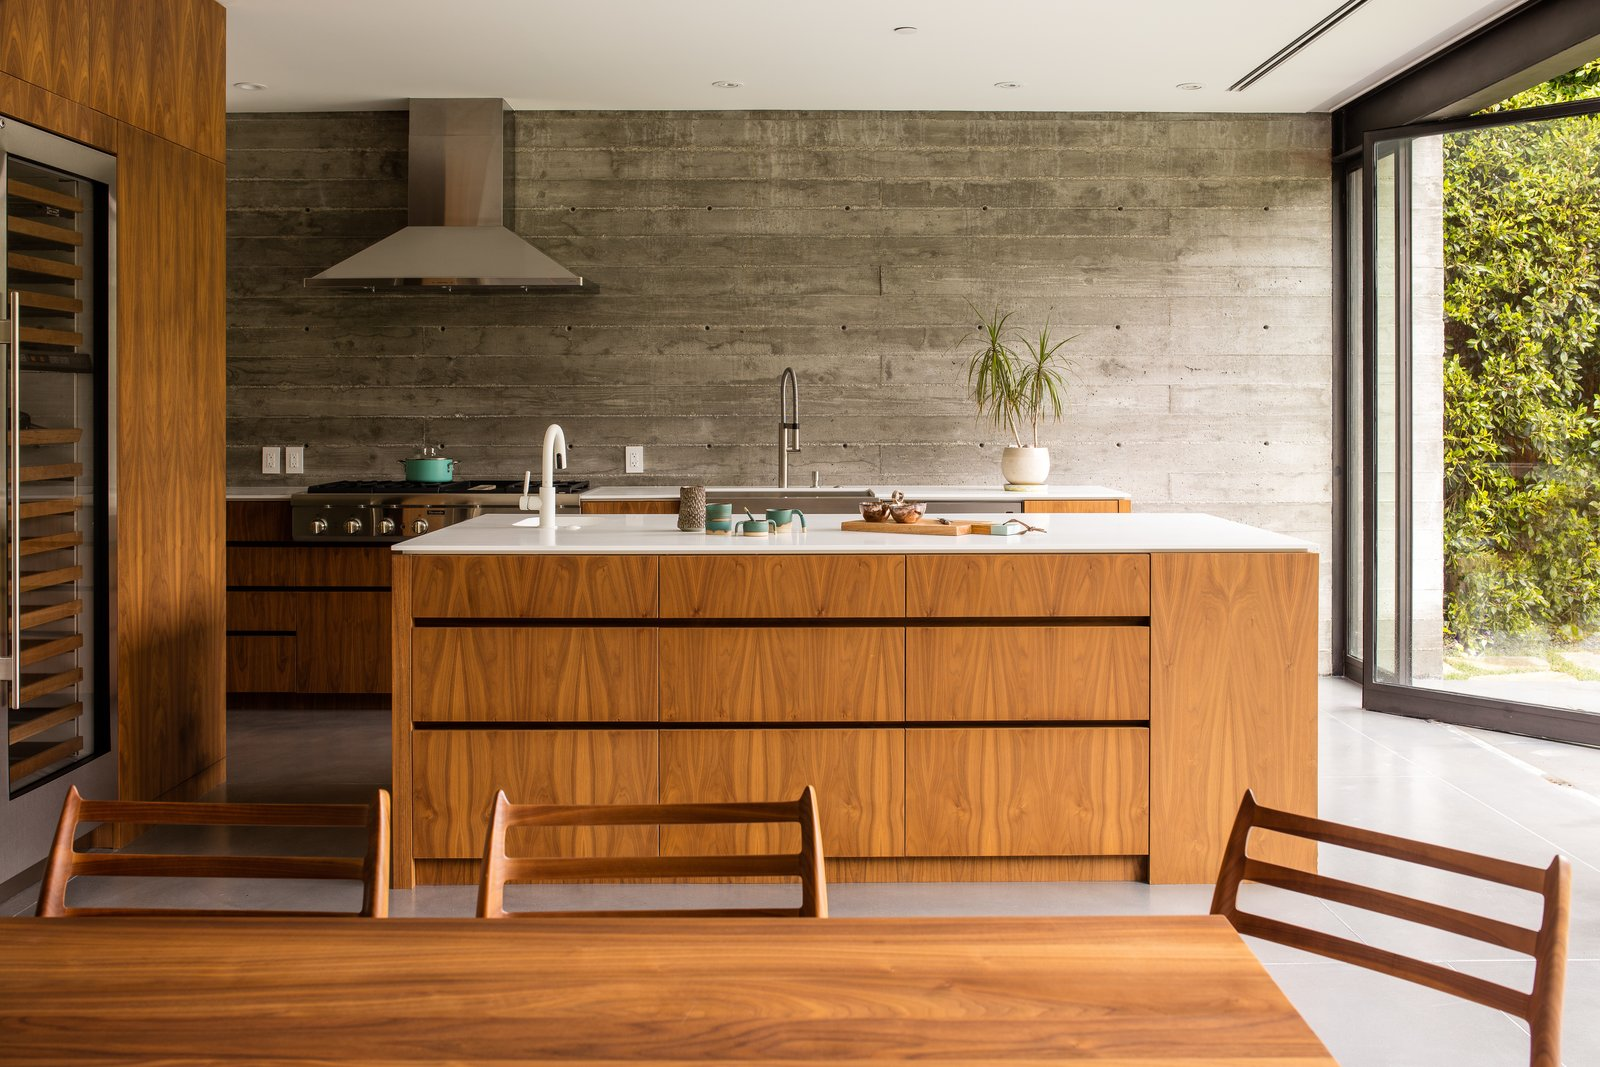 Kitchen, Wood, Concrete, Range, Refrigerator, Cooktops, Range Hood, Recessed, Concrete, Beverage Center, and Wood  Kitchen Recessed Concrete Range Photos from Hedge House x Boswell